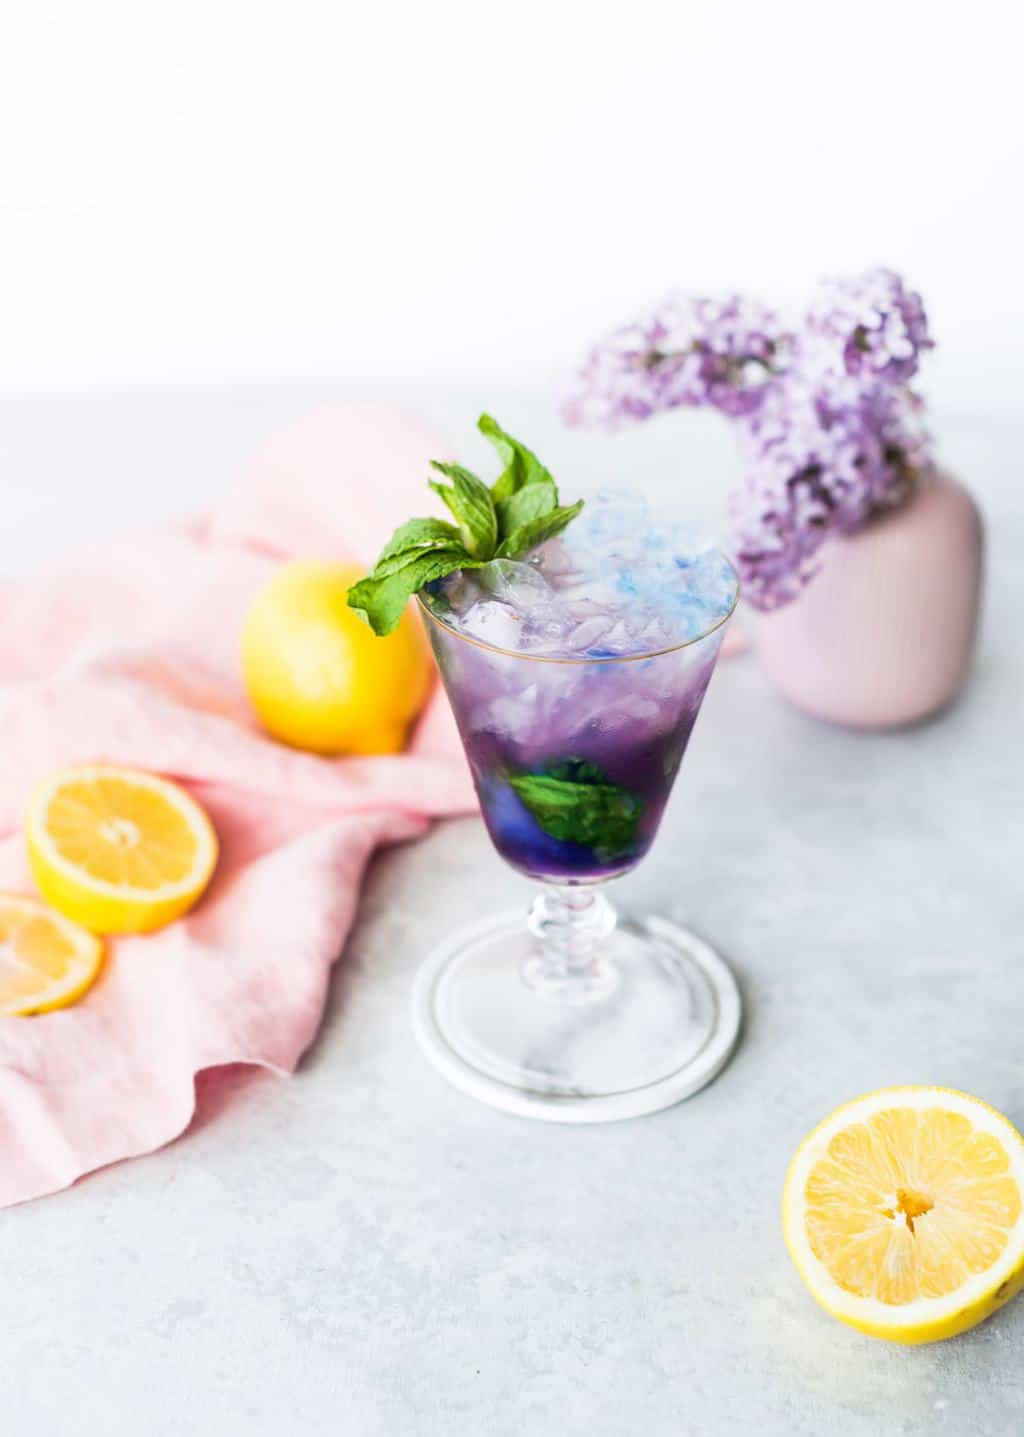 Magic Color Changing Mint Julep Recipe by top Houston lifestyle blogger Ashley Rose of Sugar & Cloth